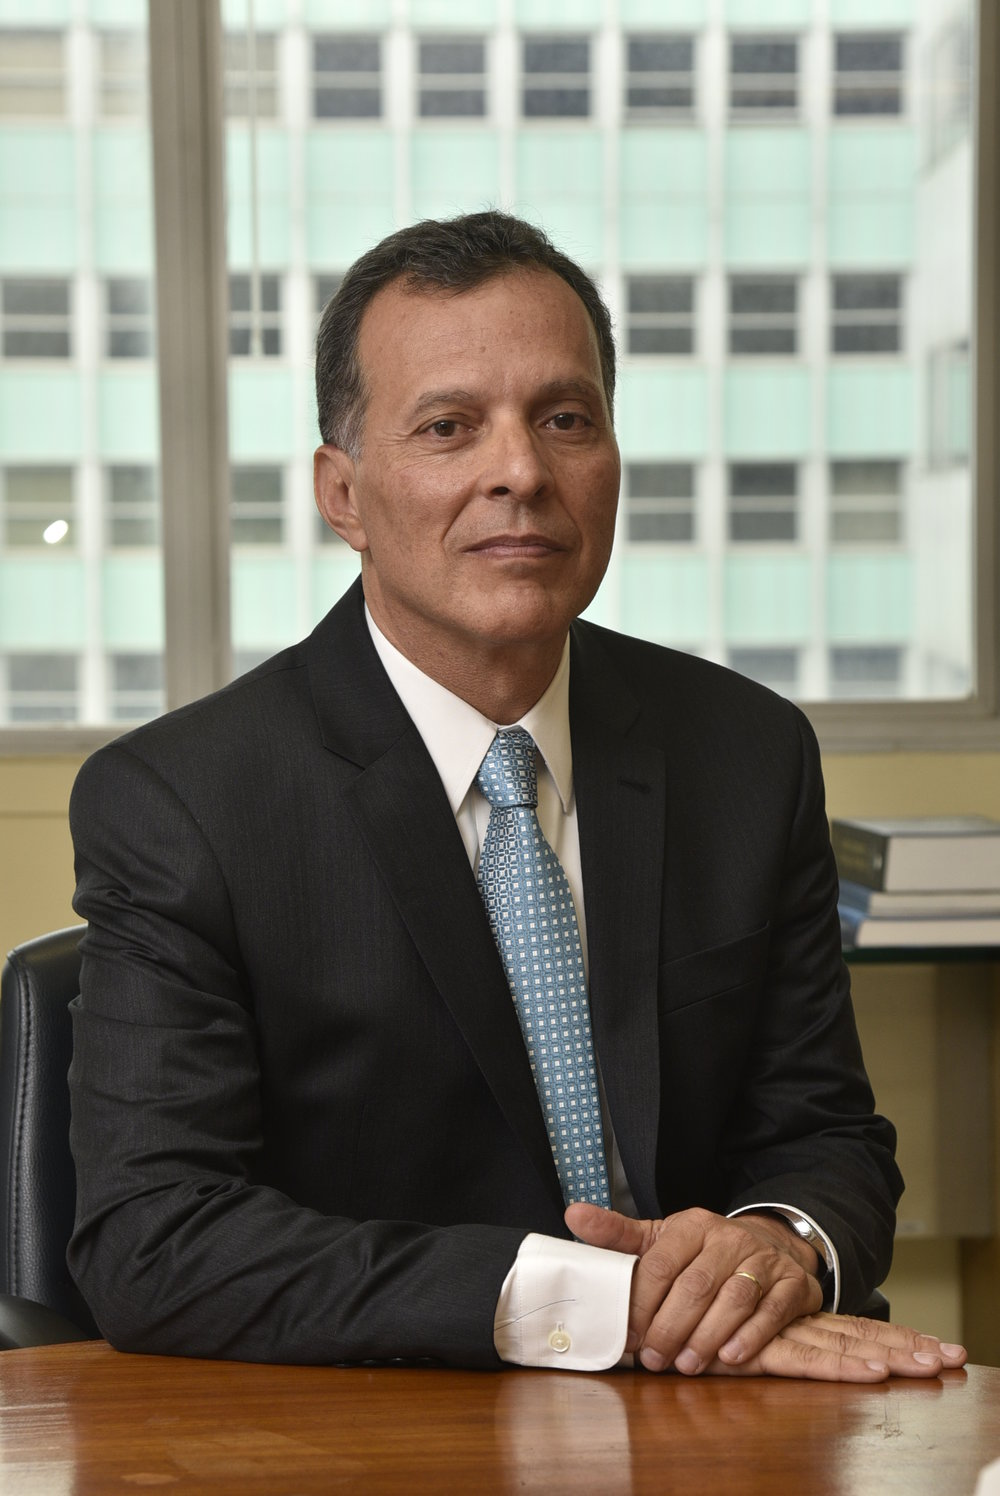 Leonardo Pereira, Former Chairman of the Securities and Exchange Commission of Brazil (CVM) between 2012 and 2017.